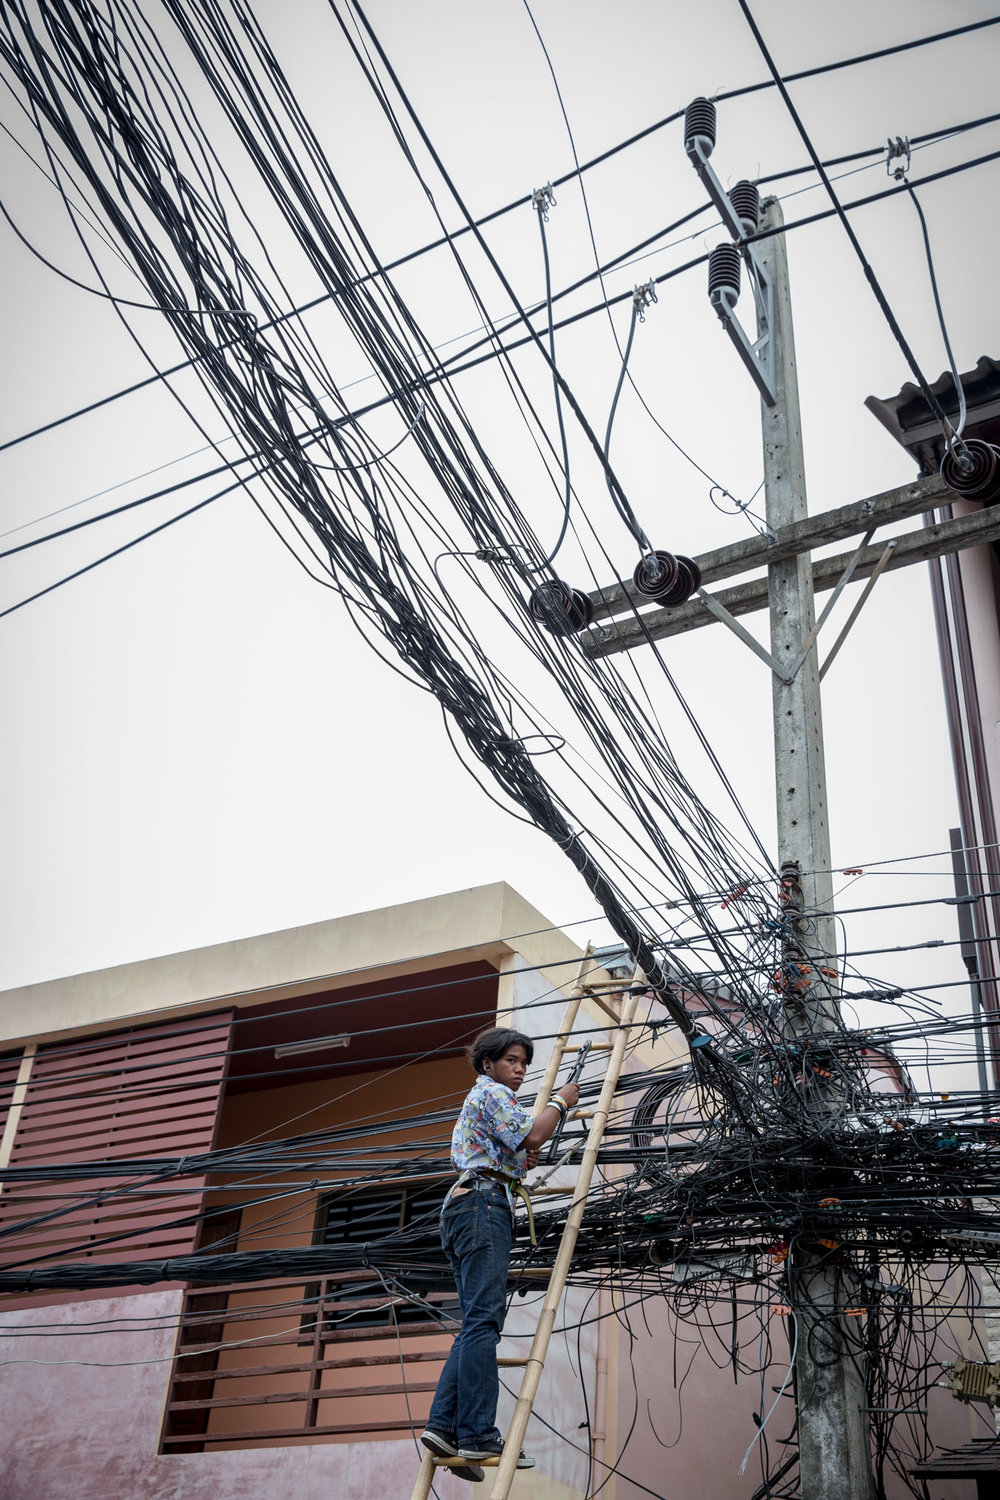 Men work on cables that hang over shops, hotels, and homes.